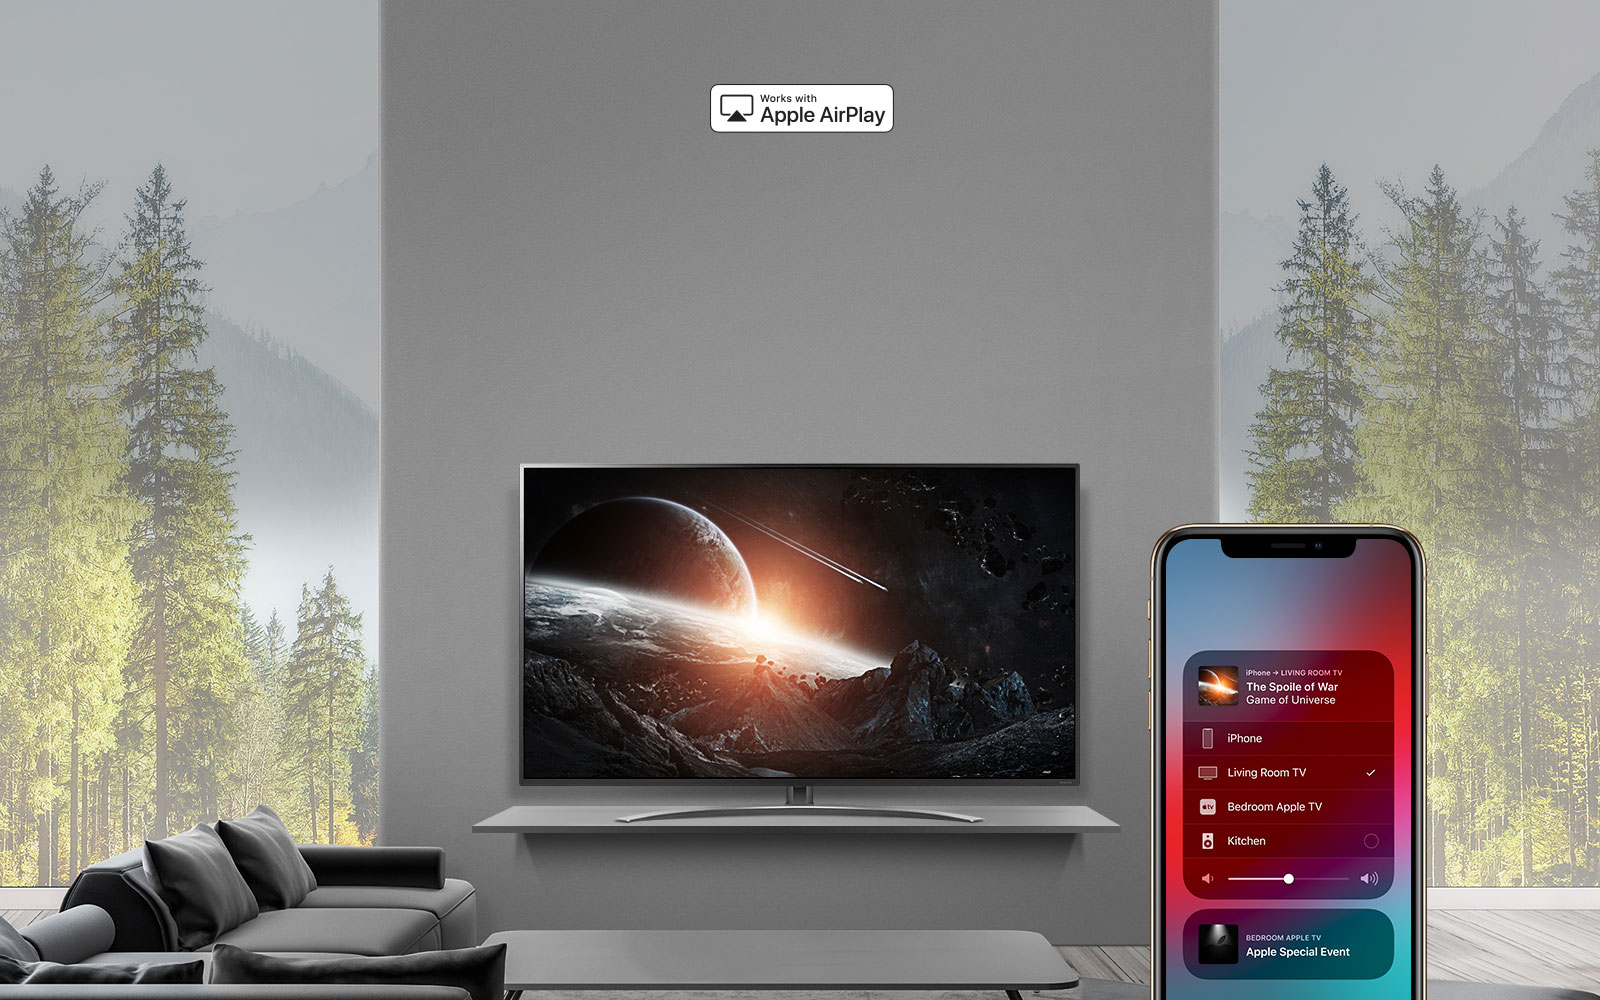 AirPlay Lets You Do It All. Watch. Listen. Share.